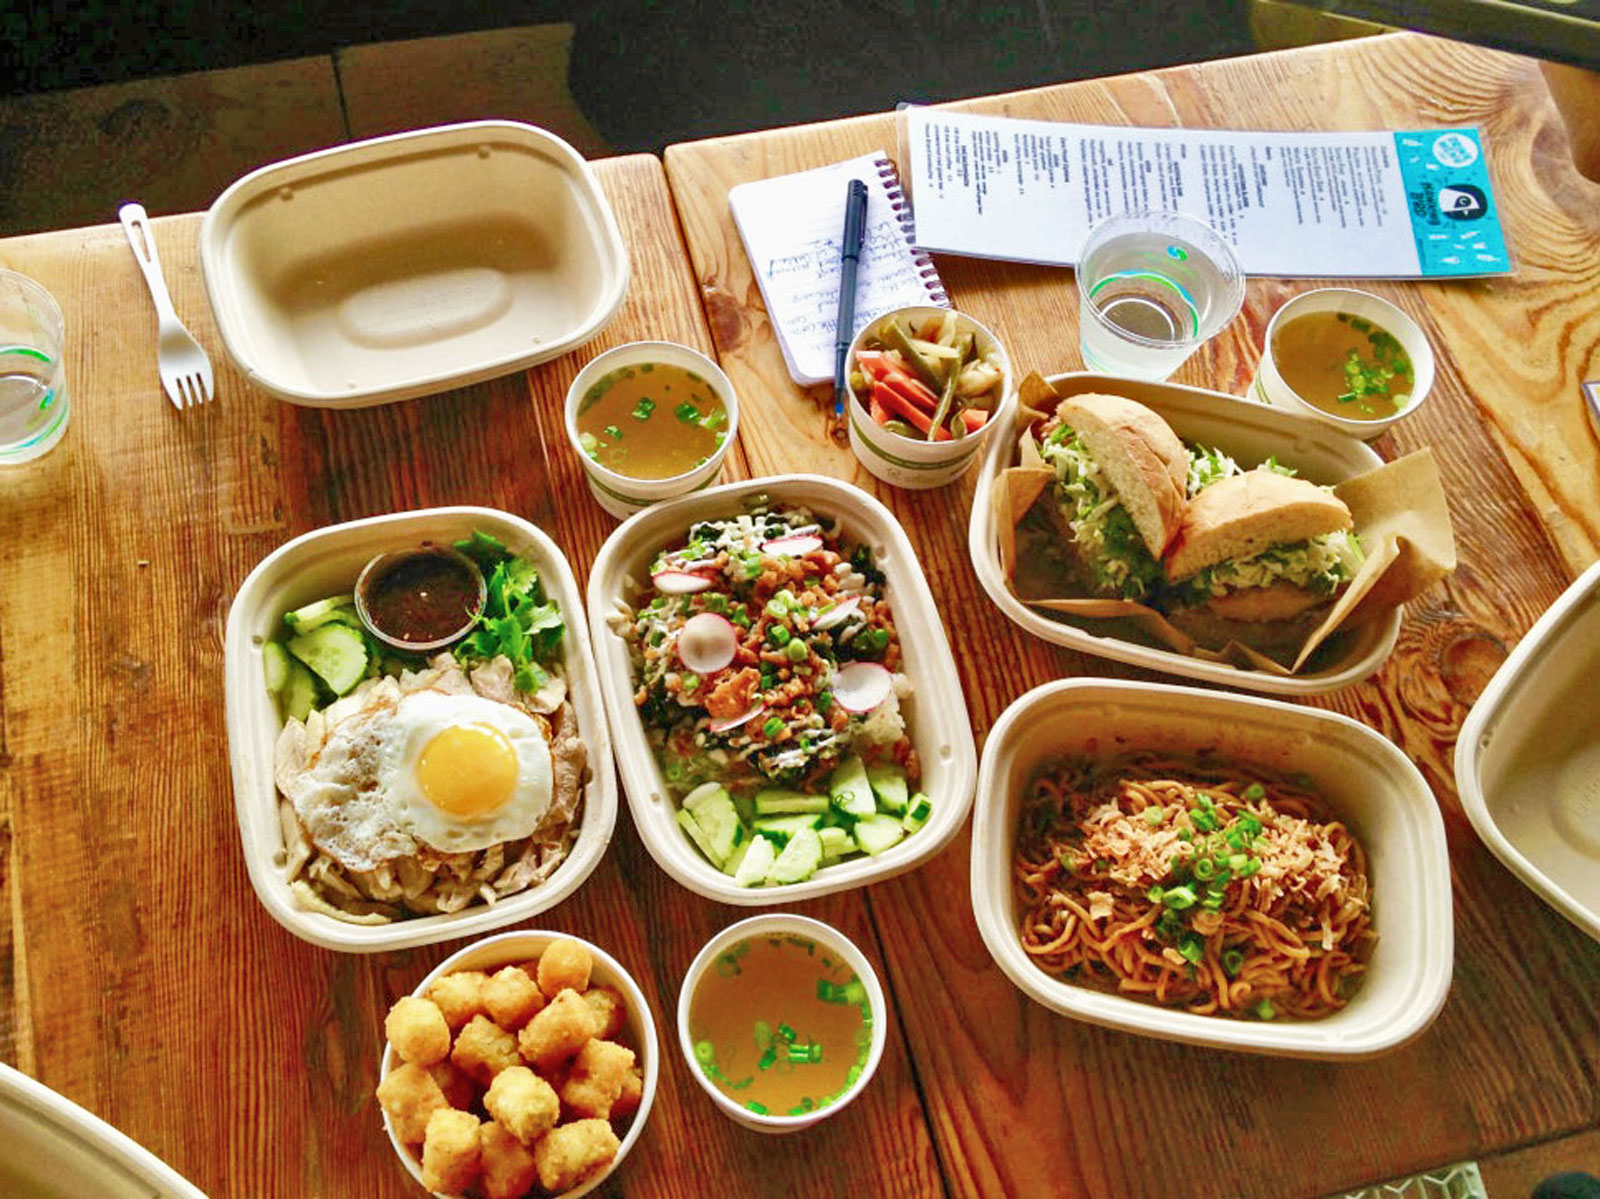 13 Facts About Oakland's Food Scene You Know If You're a Local